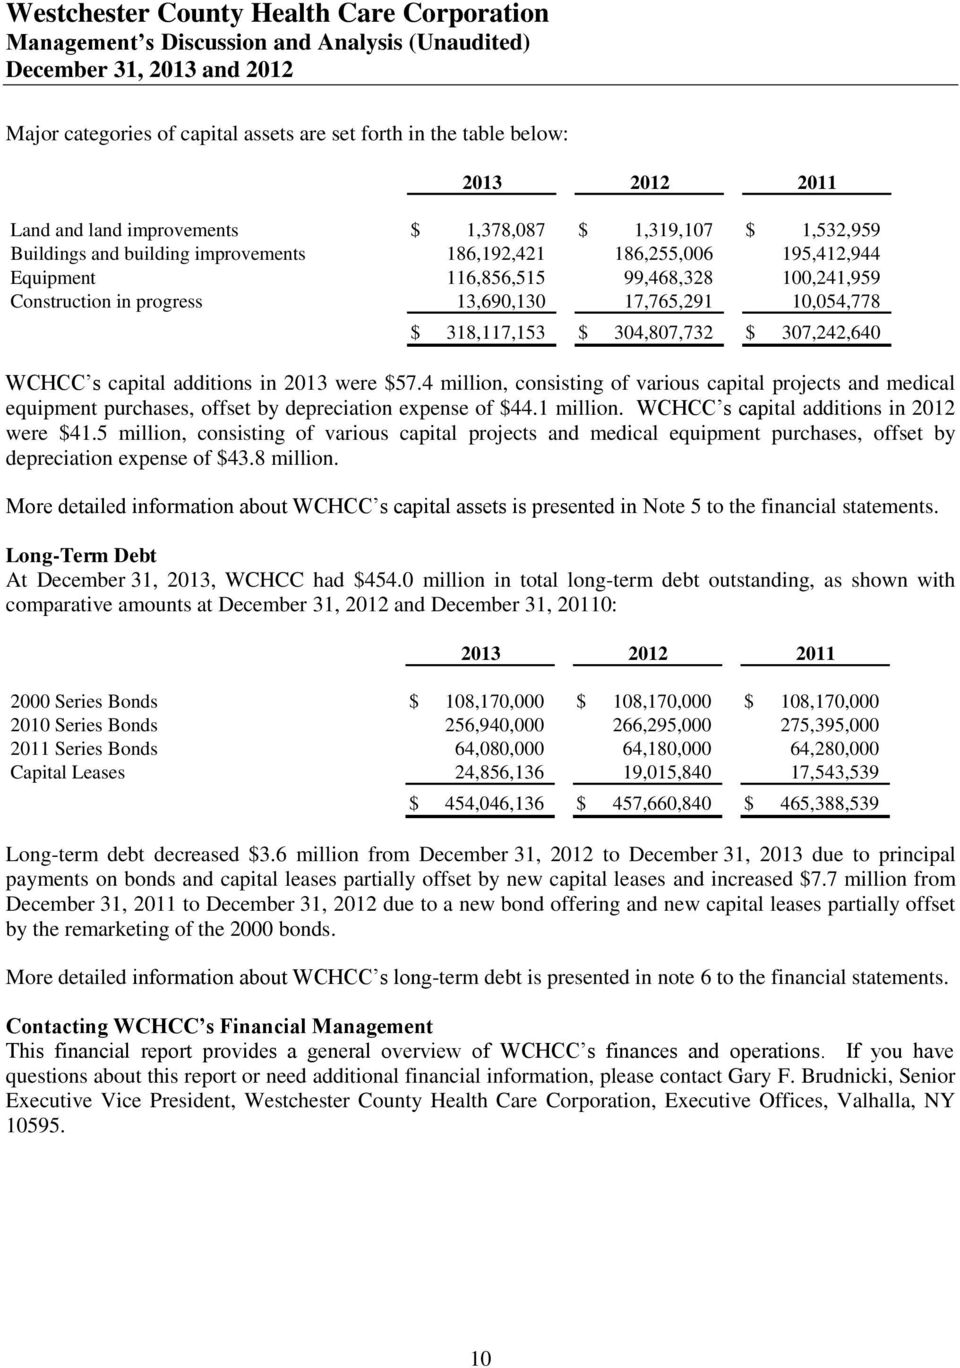 304,807,732 $ 307,242,640 WCHCC s capital additions in 2013 were $57.4 million, consisting of various capital projects and medical equipment purchases, offset by depreciation expense of $44.1 million.